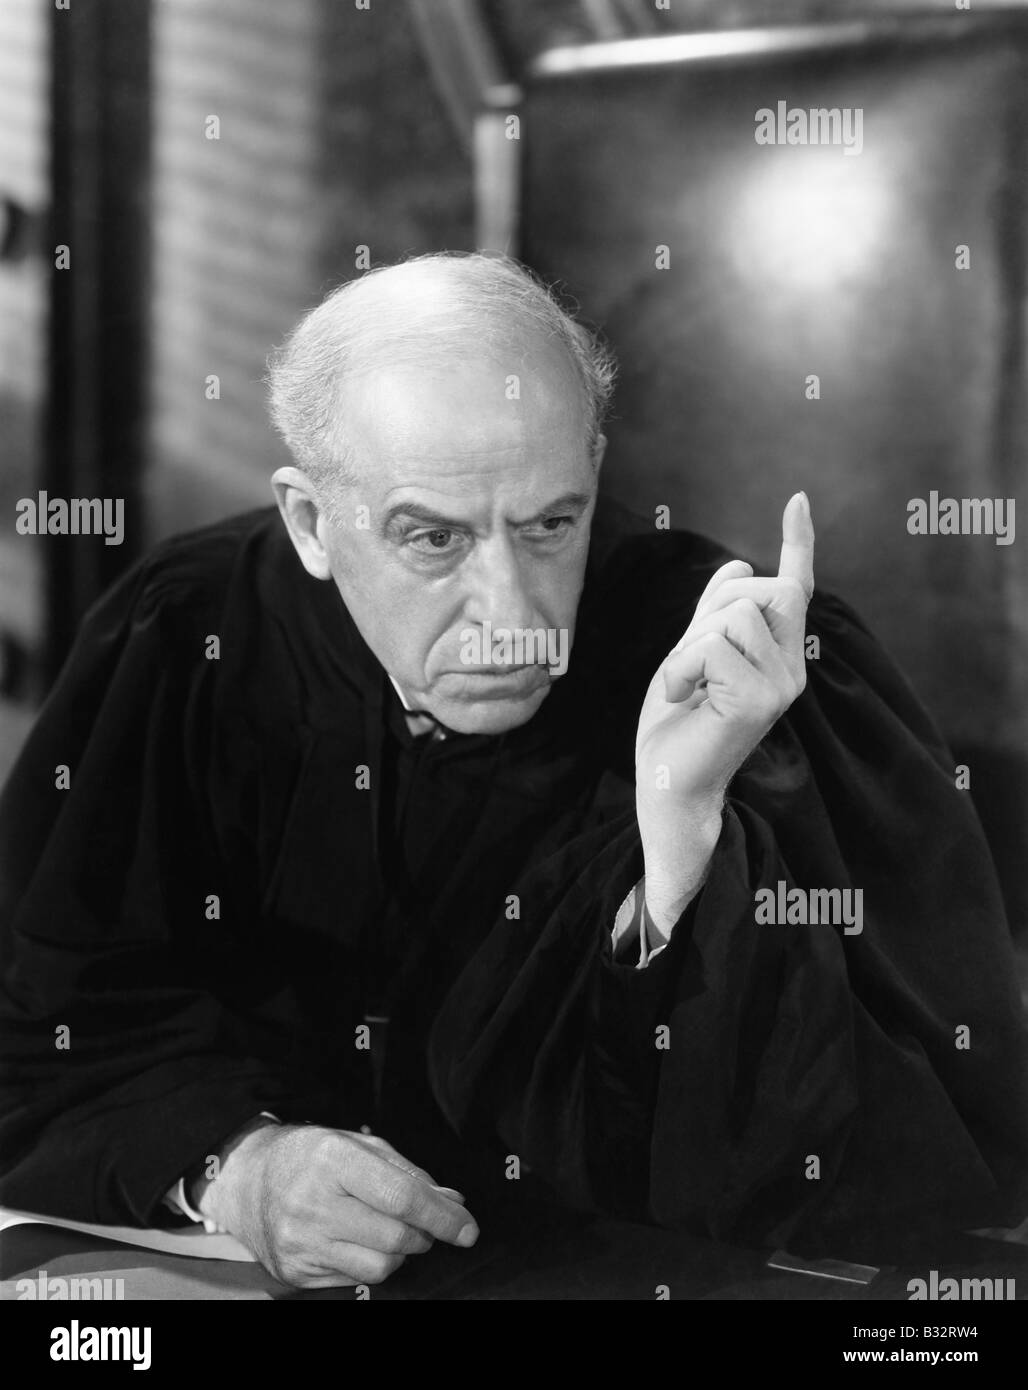 Judge in a courtroom pointing his finger up - Stock Image